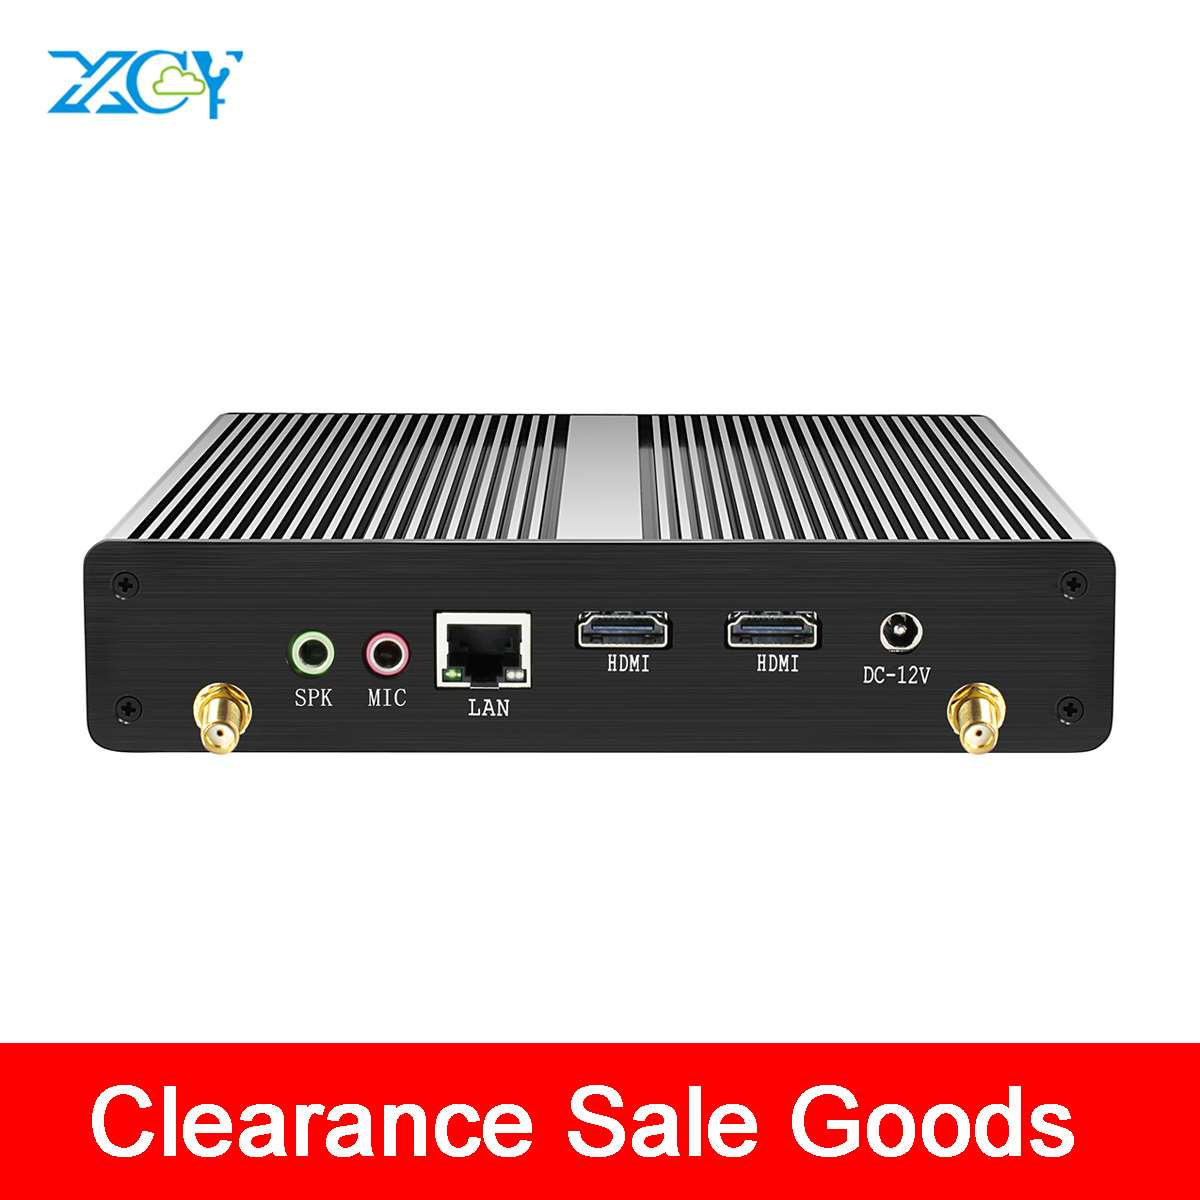 XCY Clearance Sale Mini PC Fanless Celeron N2807 2*HDMI 1.58GHz Windows 10 Wifi 6*USB TV BOX HTPC Family Computer PC